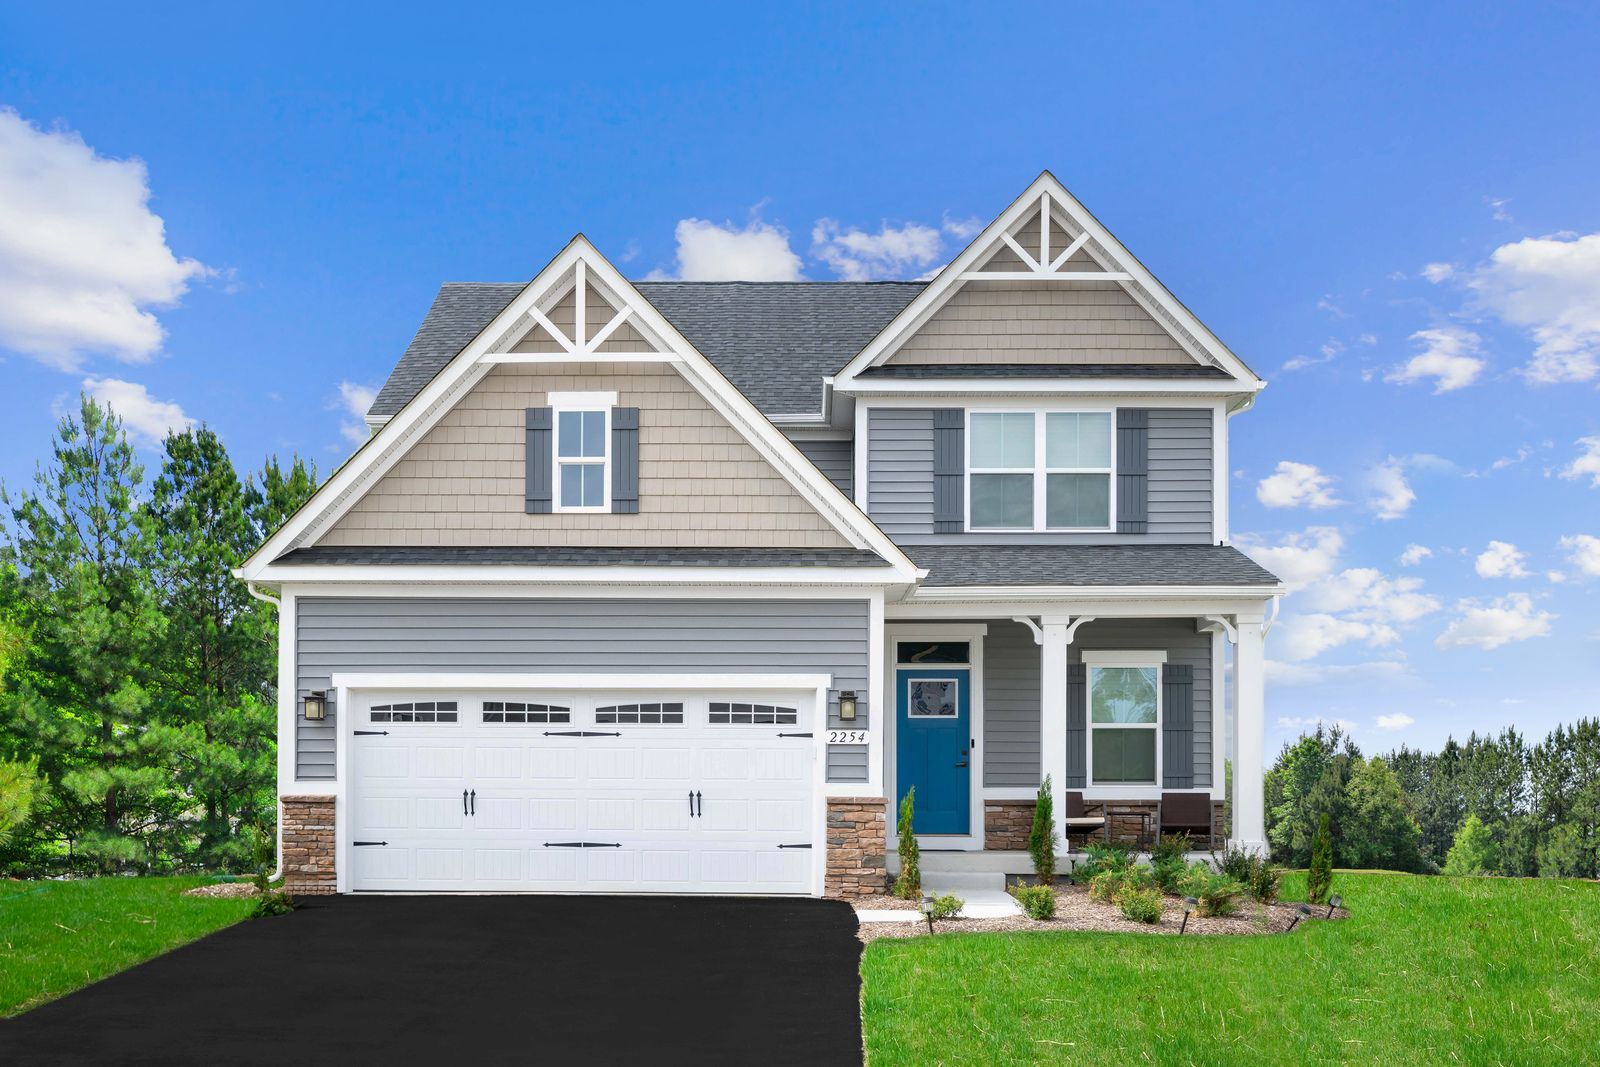 Welcome to Richmont Single-Family Homes:New single-family homes in Fox Chapel Schools with open floorplans up to 5 bedrooms, 3 ½ baths & updated finishes with great access to Rt. 28 and I-76.Click hereto schedule an appointment.